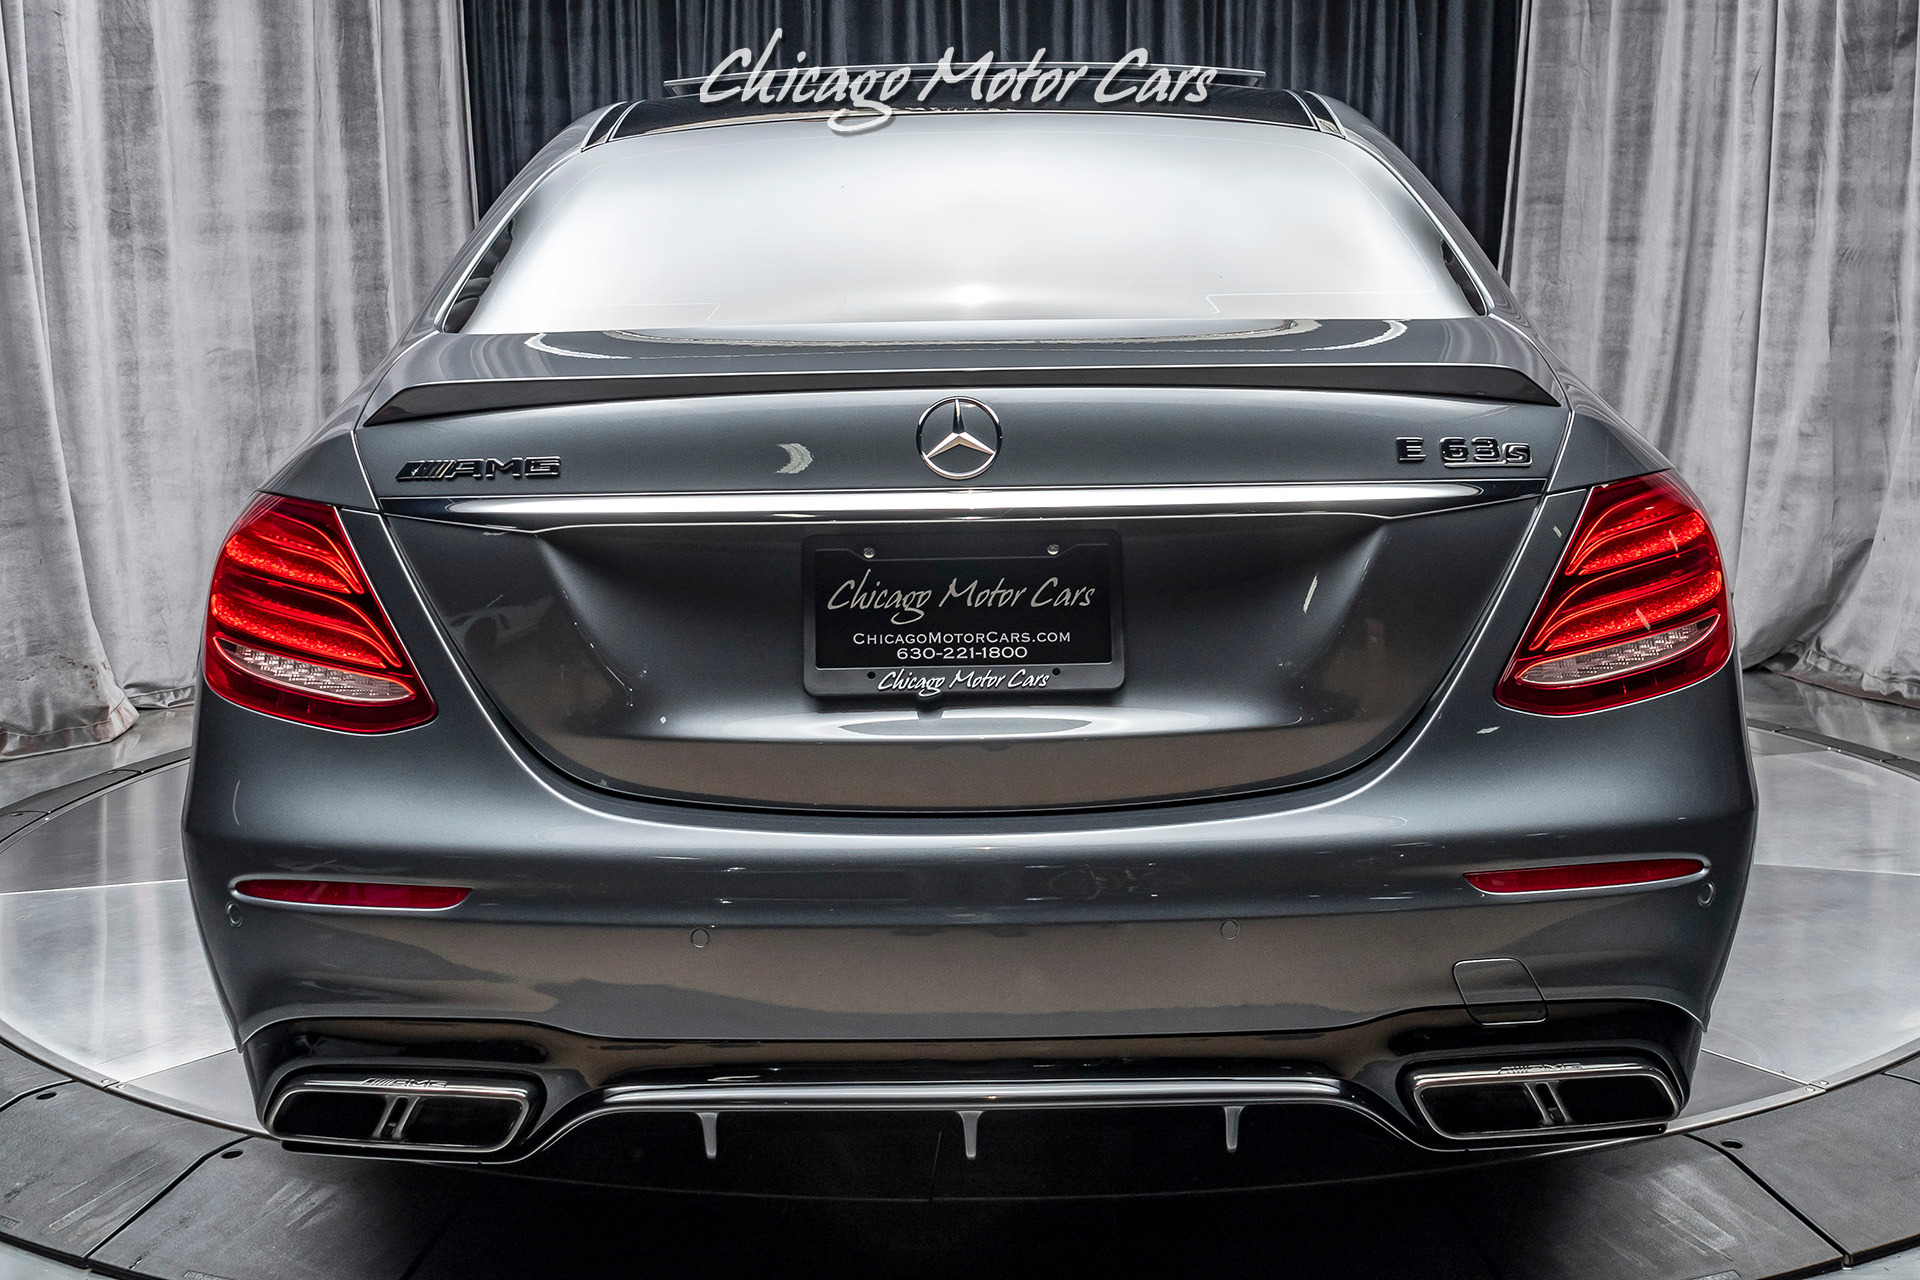 Used-2019-Mercedes-Benz-E63-S-AMG-4-Matic-Sedan-MSRP-127k-RENNtech-Upgrades